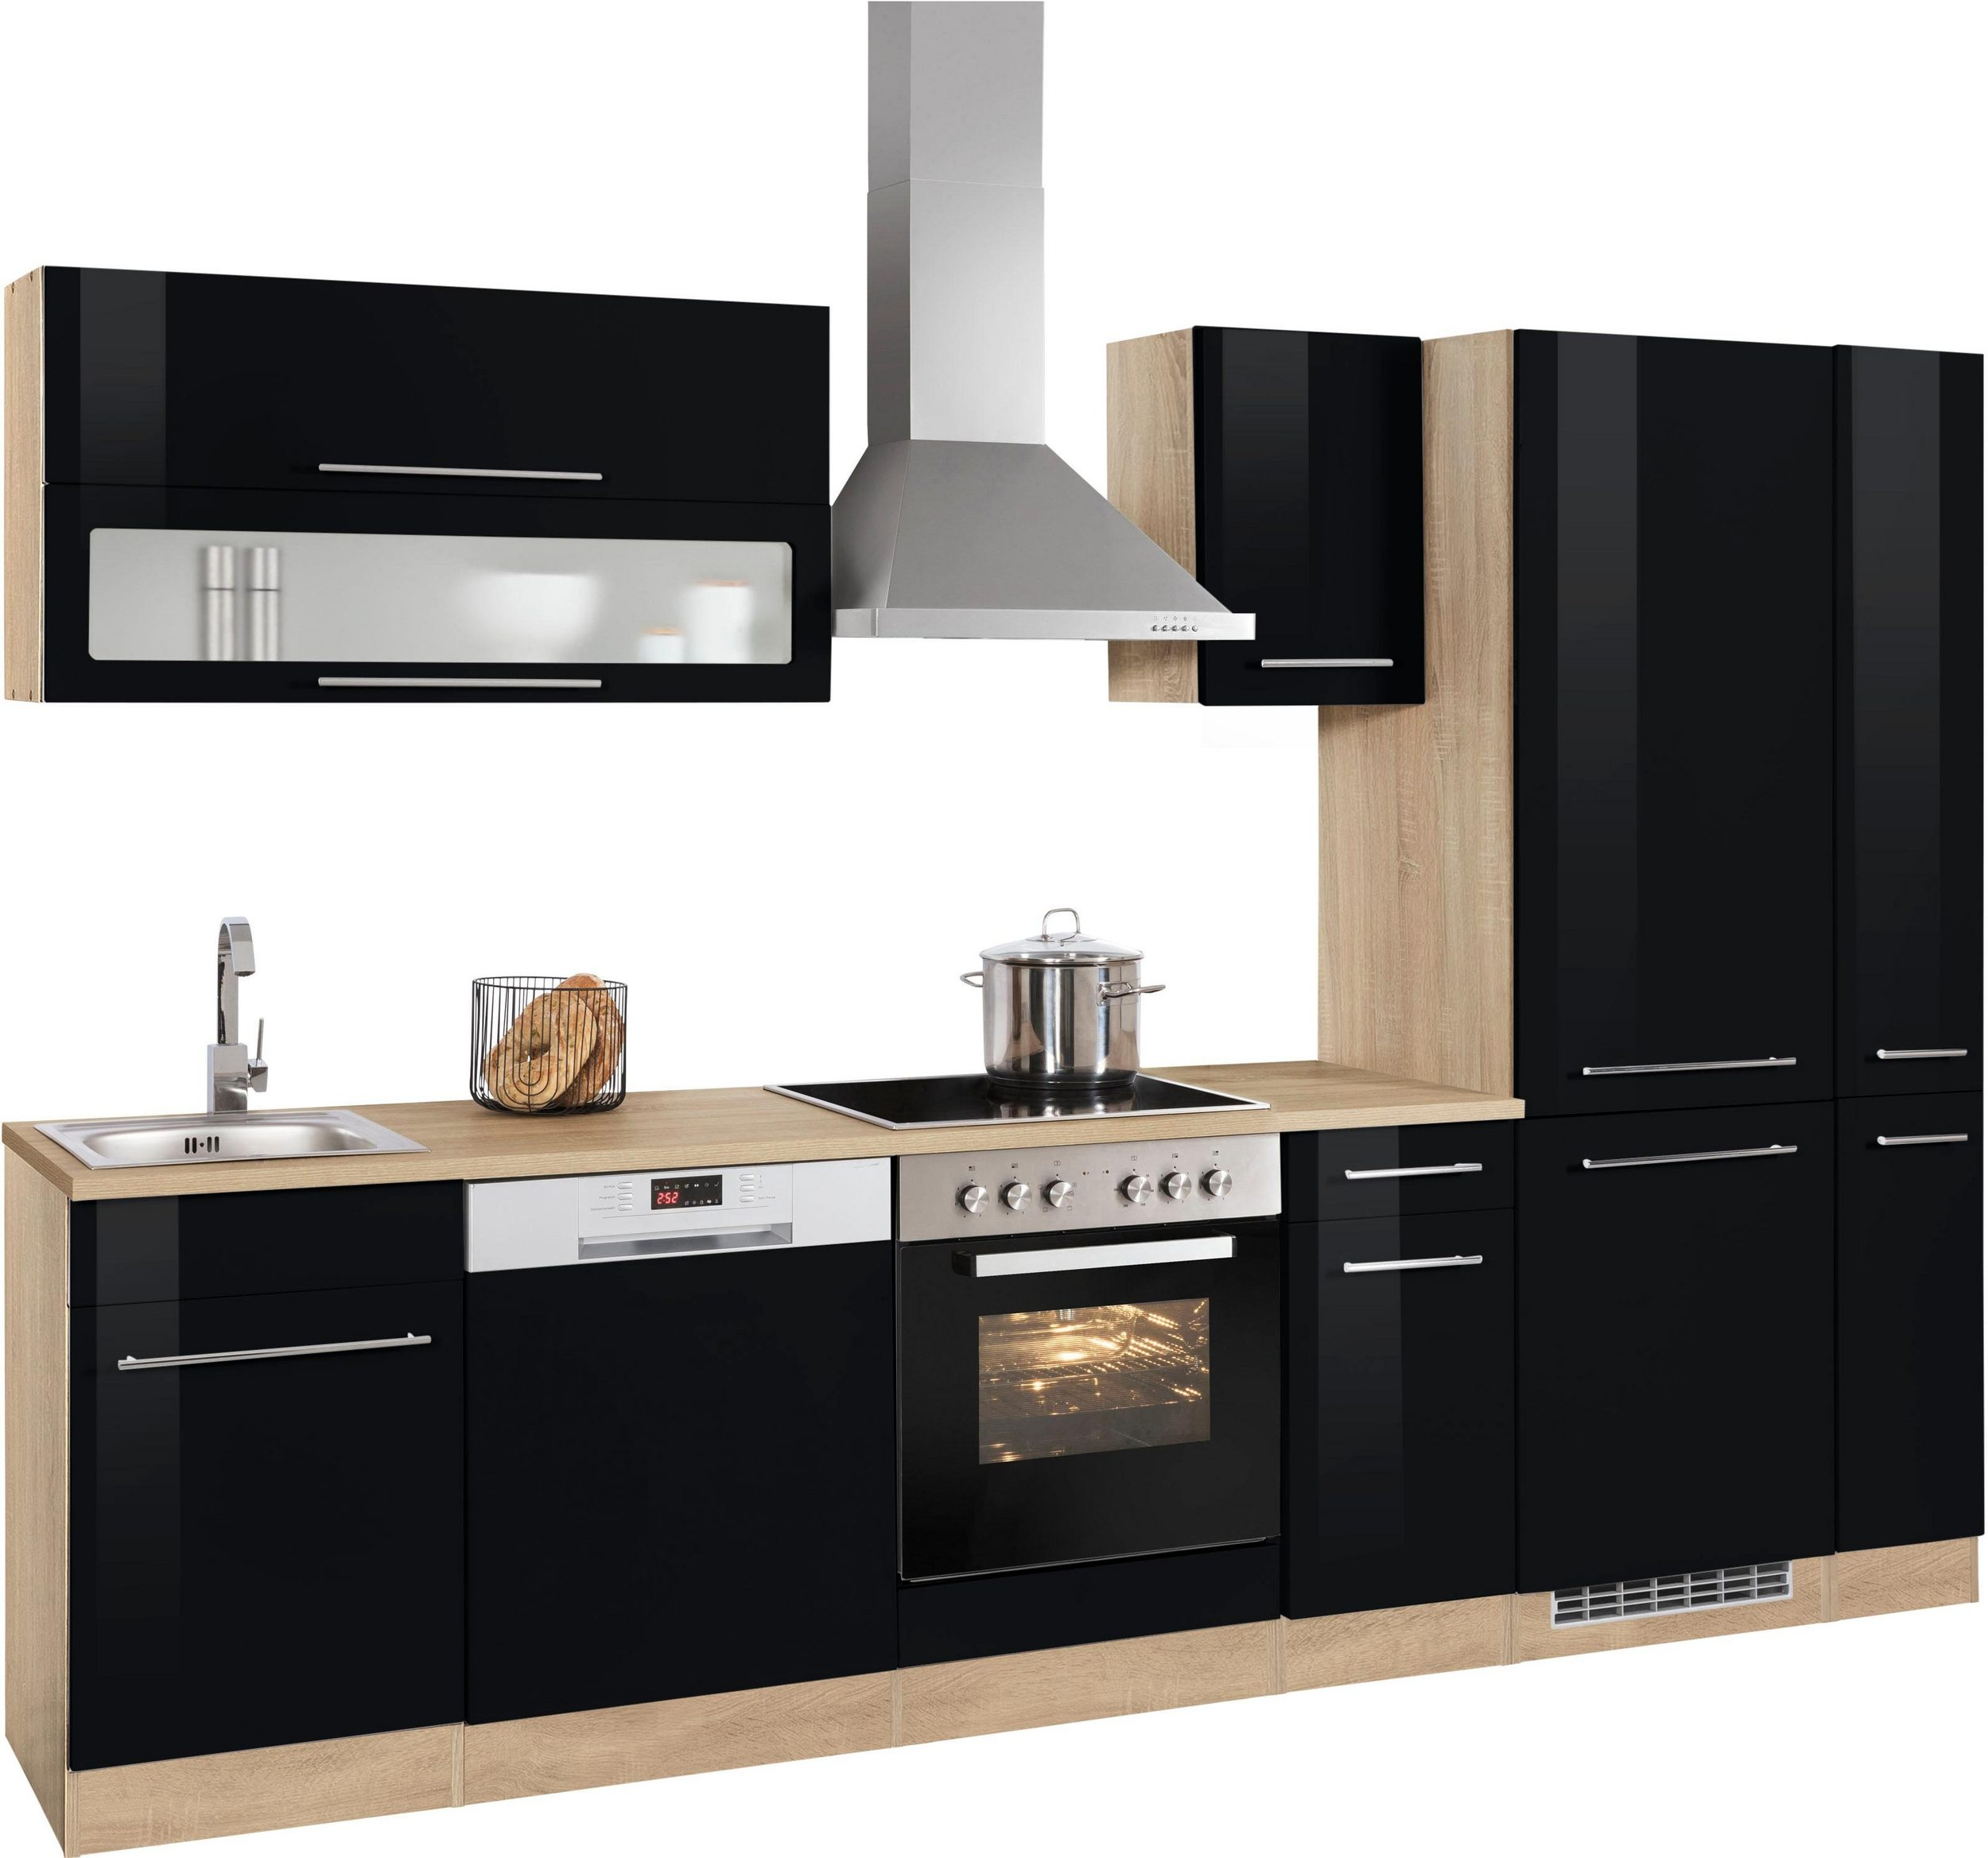 6919883463 Vimle Kitchen Cabinets HELD khmer in phnom penh cambodia